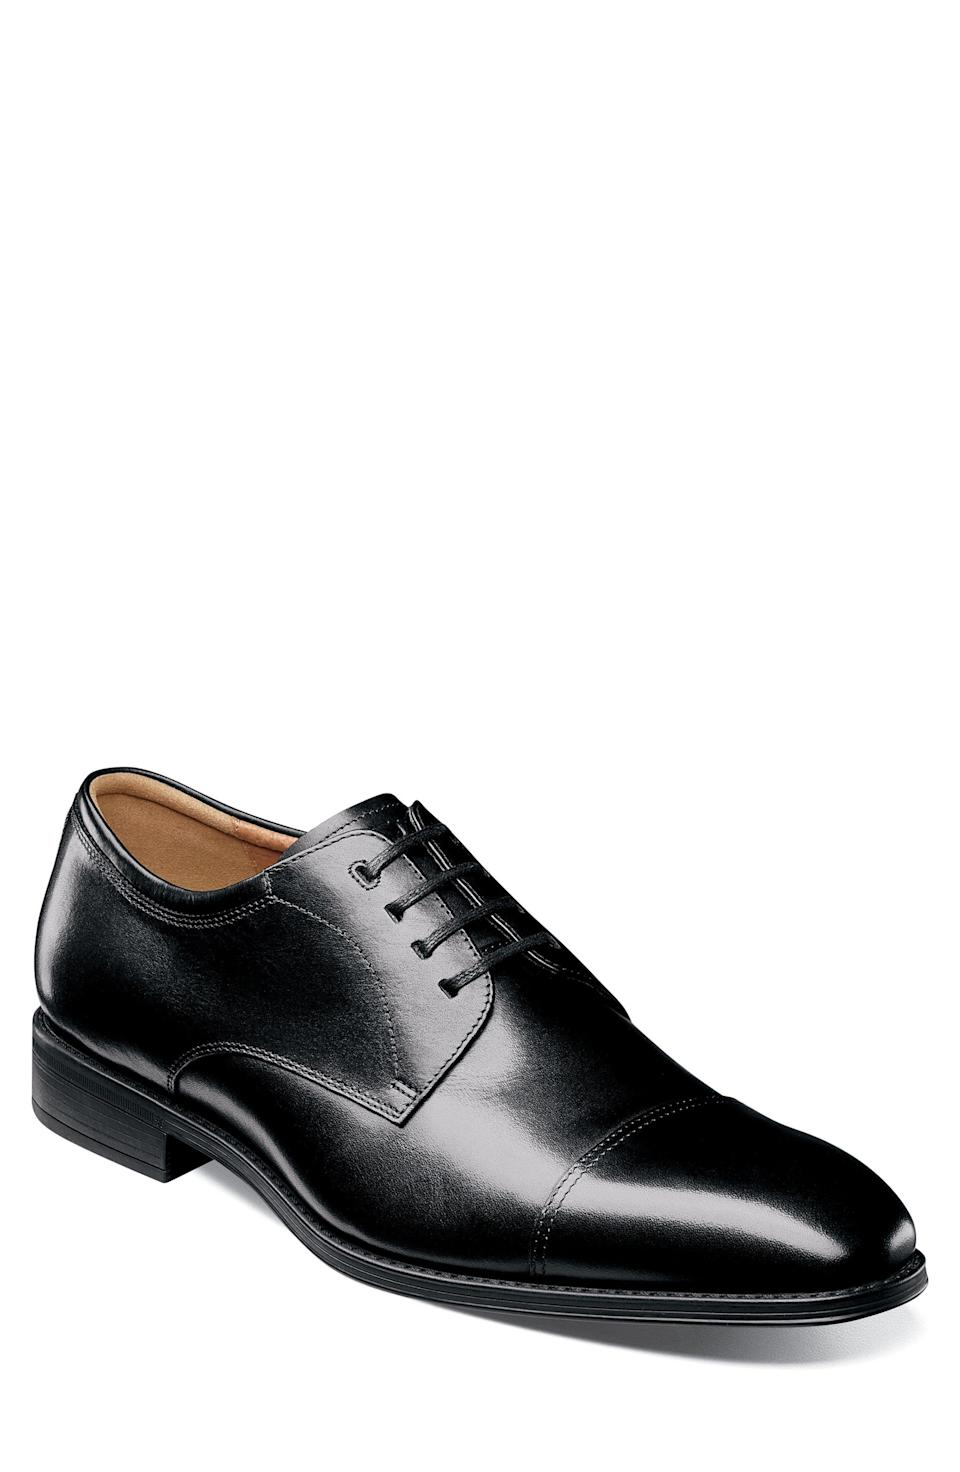 """<p><strong>FLORSHEIM</strong></p><p>nordstrom.com</p><p><a href=""""https://go.redirectingat.com?id=74968X1596630&url=https%3A%2F%2Fwww.nordstrom.com%2Fs%2Fflorsheim-ariano-cap-toe-oxford-men%2F6146250&sref=https%3A%2F%2Fwww.esquire.com%2Fstyle%2Fmens-fashion%2Fg37002225%2Fnordstrom-anniversary-sale-mens-fashion-deals-2021%2F"""" rel=""""nofollow noopener"""" target=""""_blank"""" data-ylk=""""slk:Shop Now"""" class=""""link rapid-noclick-resp"""">Shop Now</a></p><p><strong>Sale: </strong><strong>$74.90</strong></p><p><strong>After Sale: $115.00</strong></p><p>Because fancy happenings are on the horizon. </p>"""